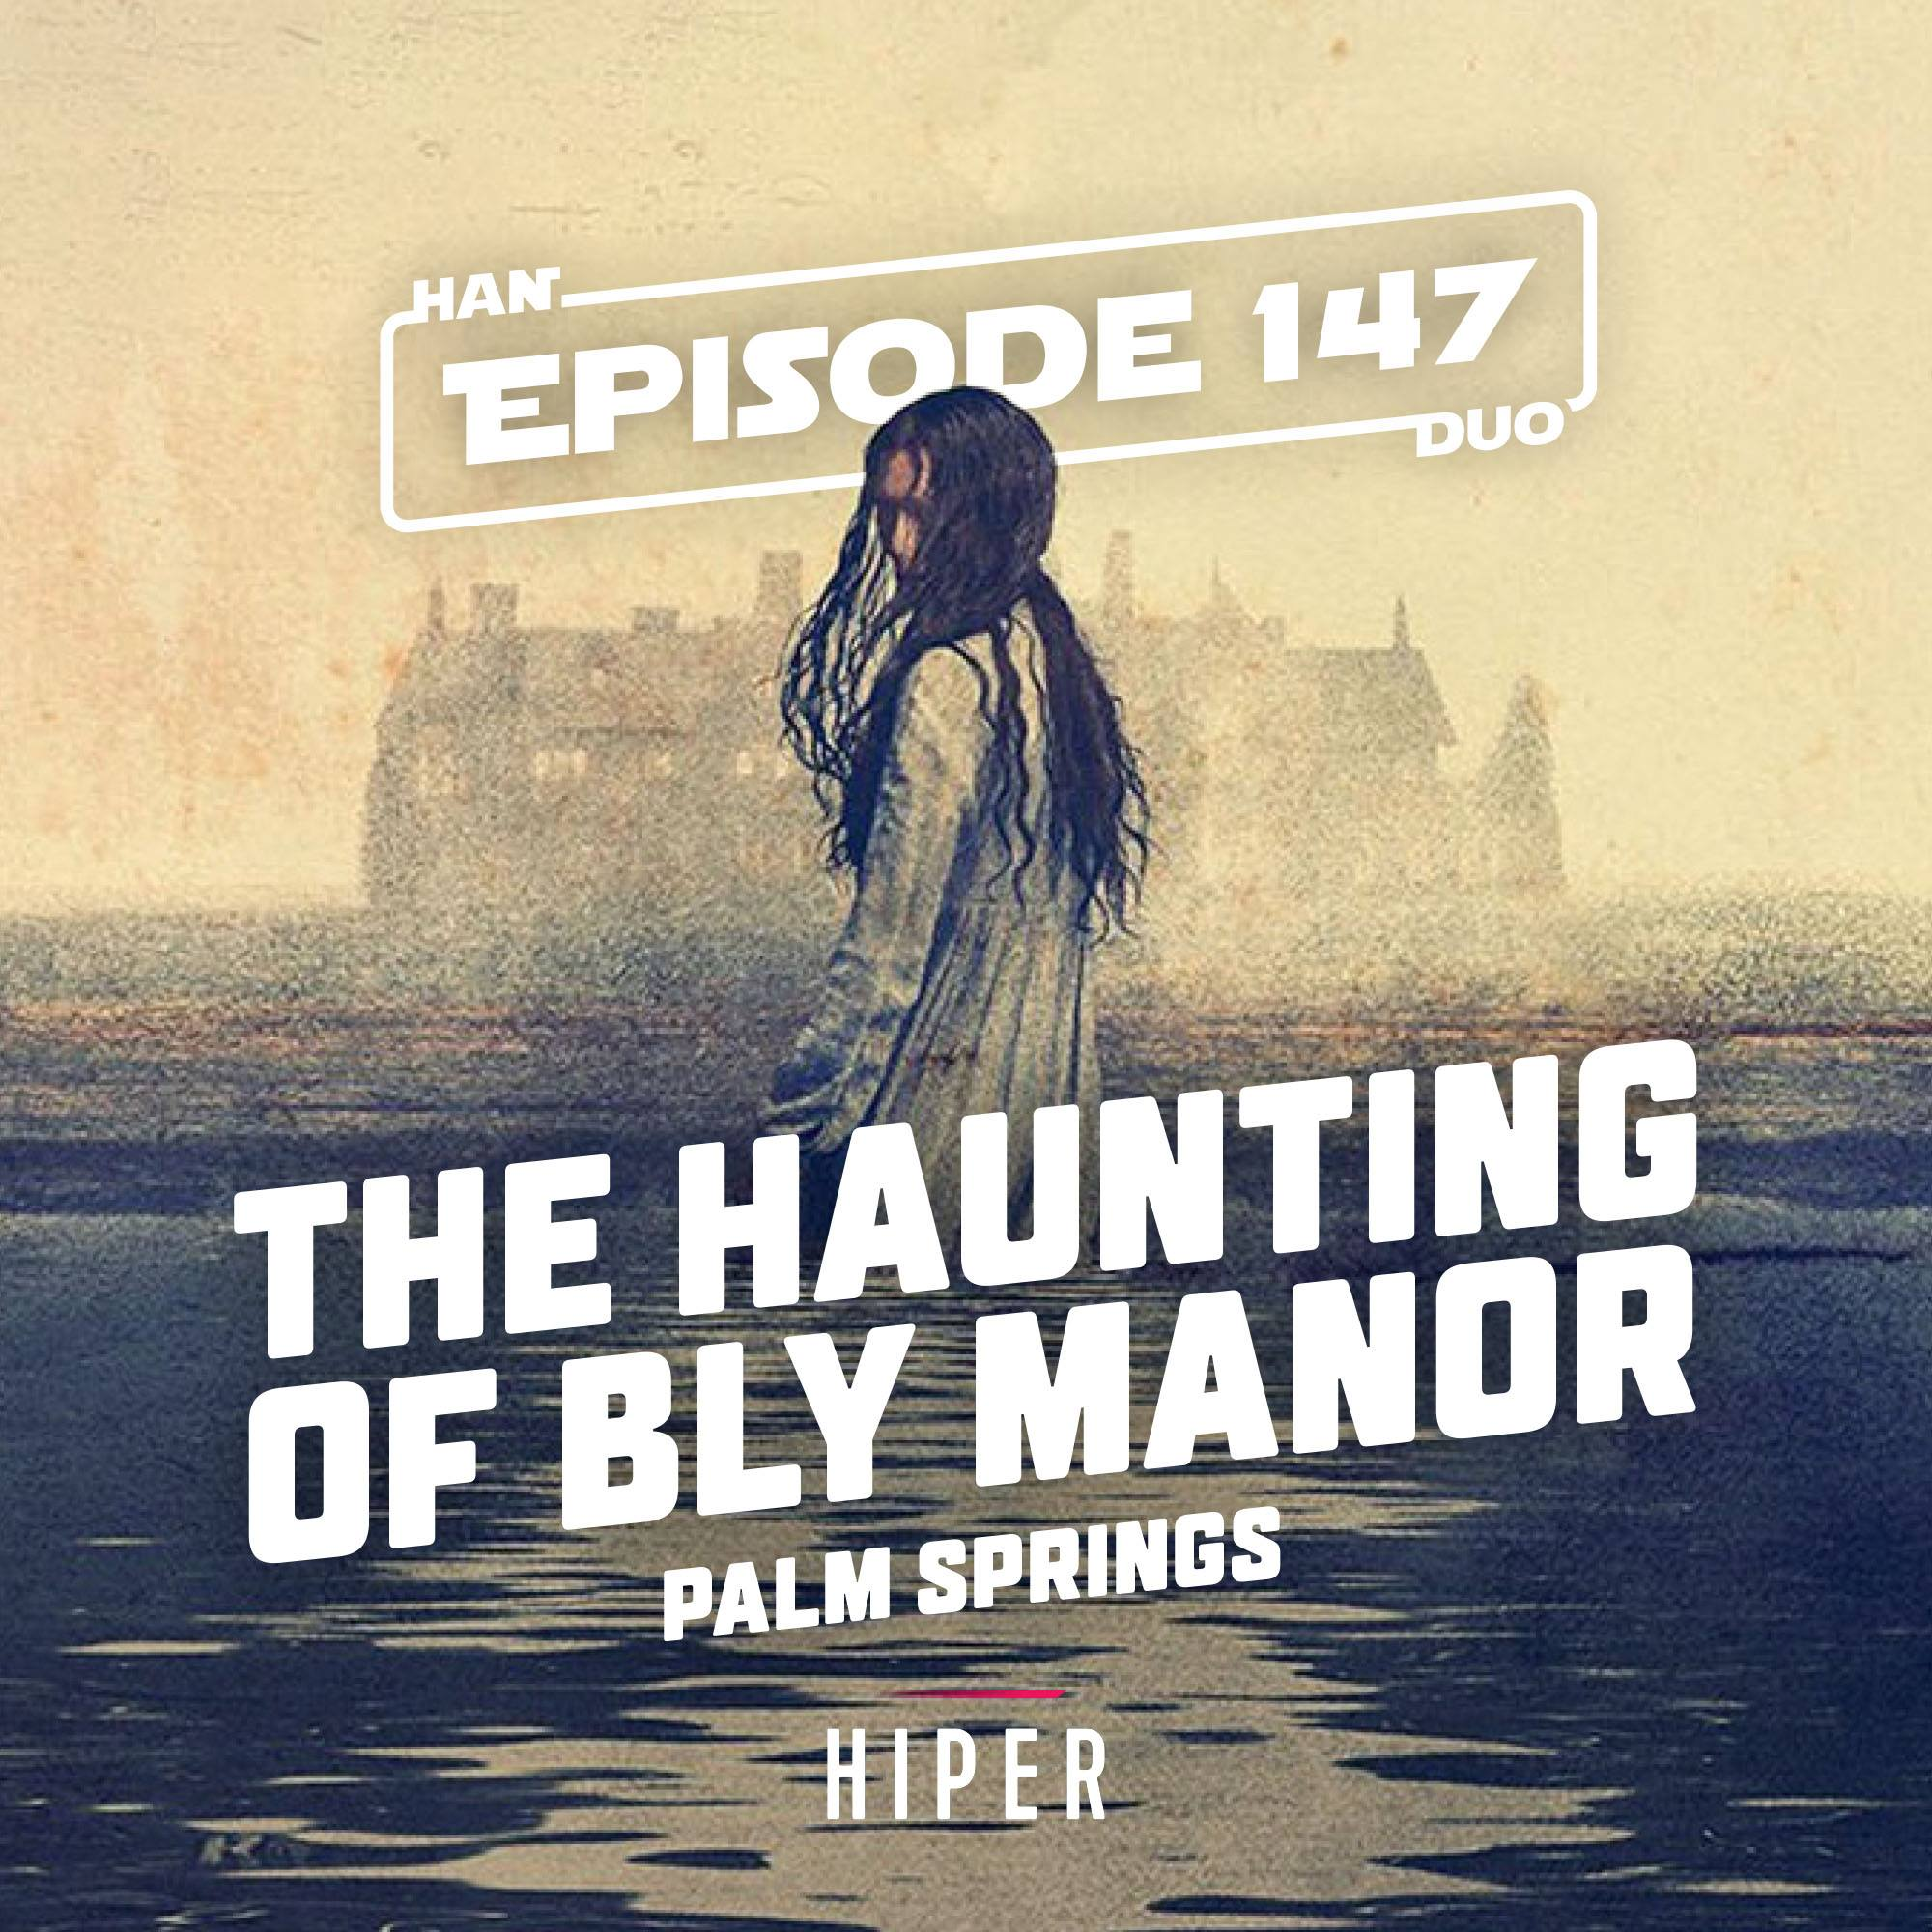 Han Duo #147: The Haunting of Bly Manor, Palm Springs